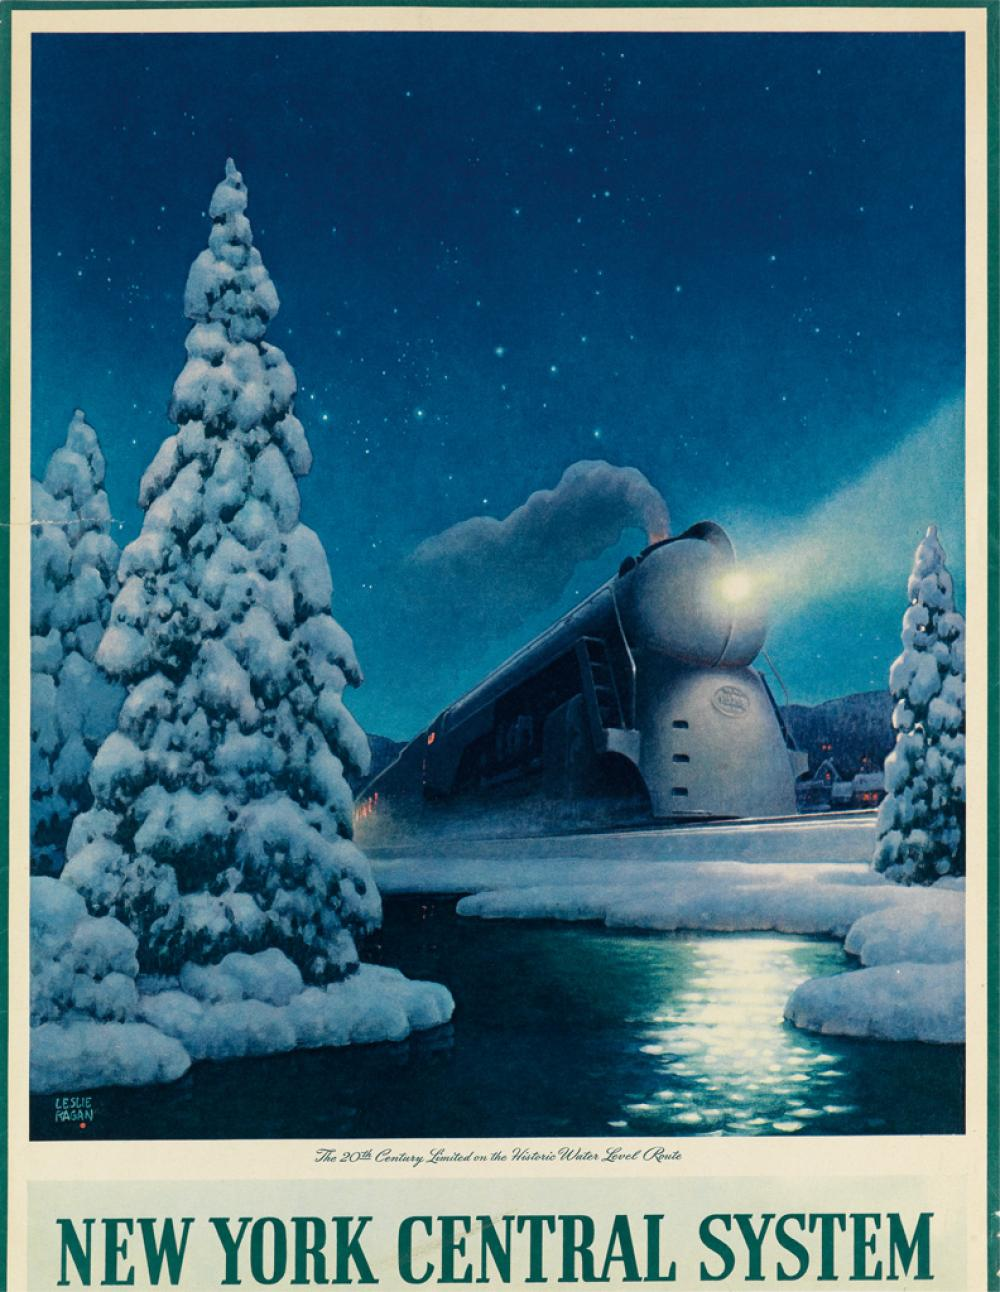 LESLIE RAGAN (1897-1972). THE 20TH CENTURY LIMITED / NEW YORK CENTRAL SYSTEM. Calendar back. 1945. 20x15 inches, 52x40 cm.